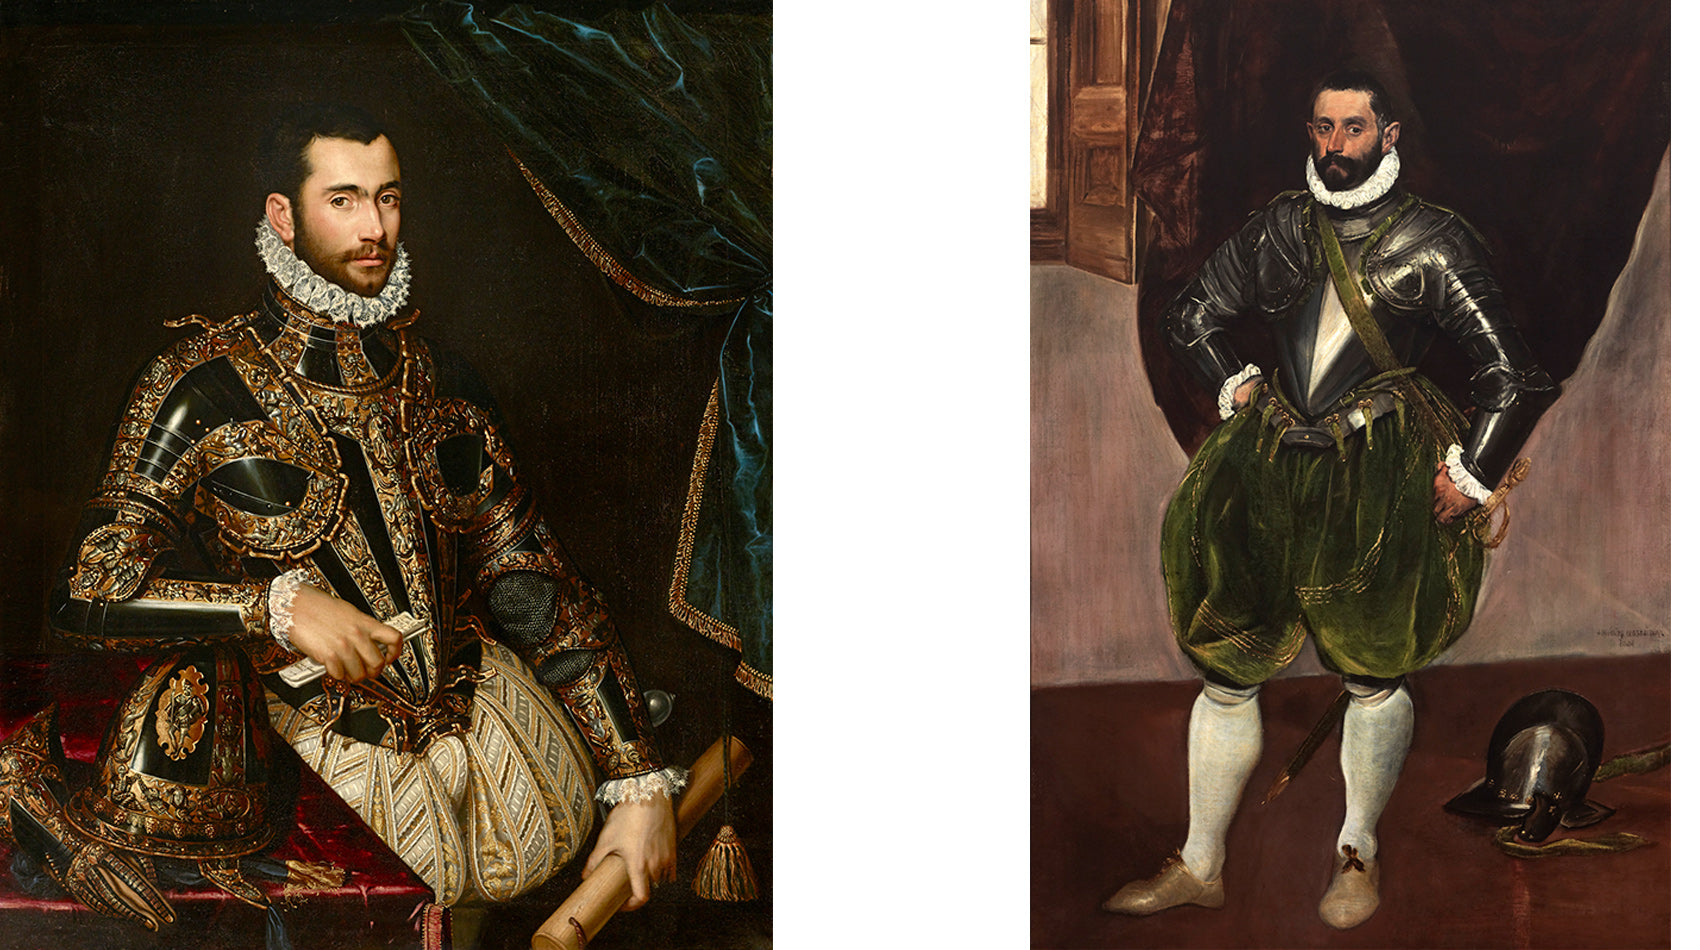 Both portraits hanging side-by-side at the Frick